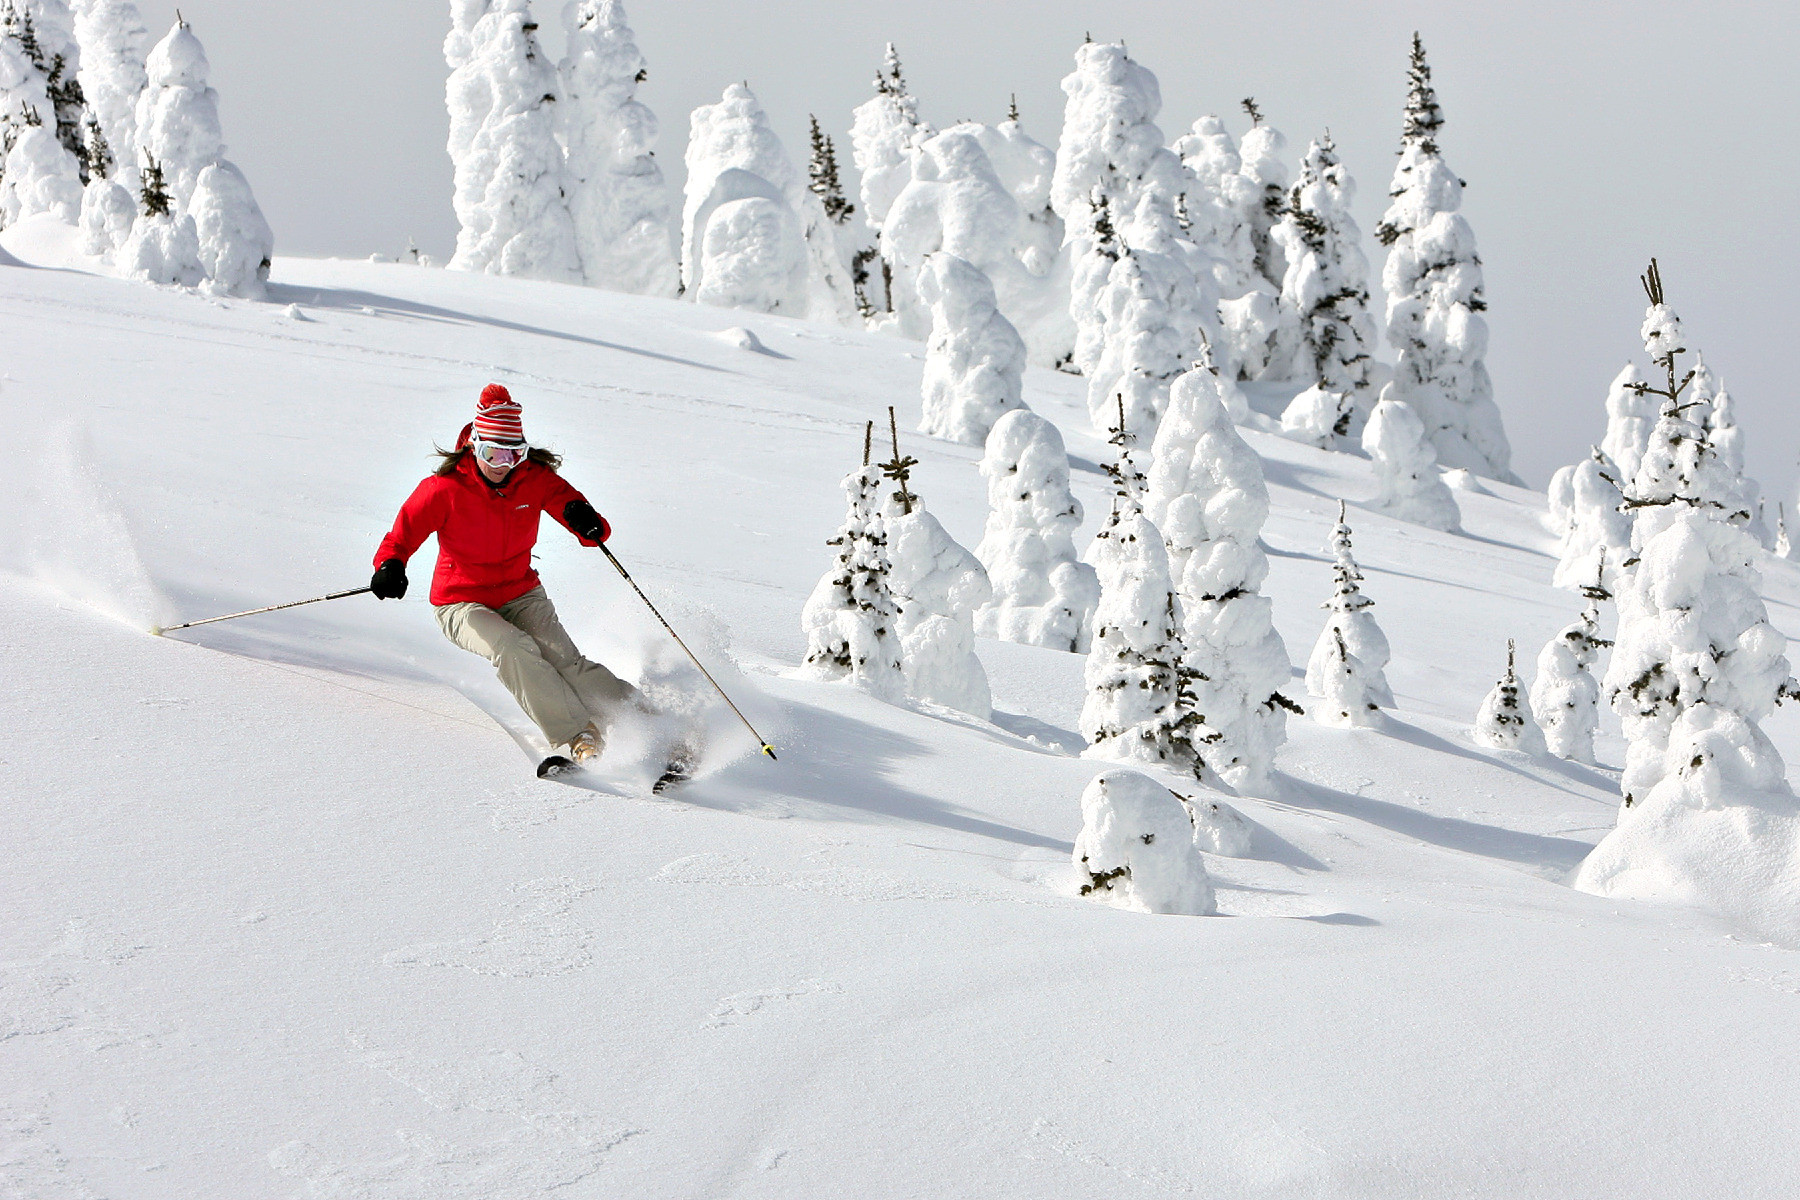 A skier dodges snow ghosts at Sun Peaks. Photo by Paul Morrison, courtesy of Tourism Sun Peaks.undefined